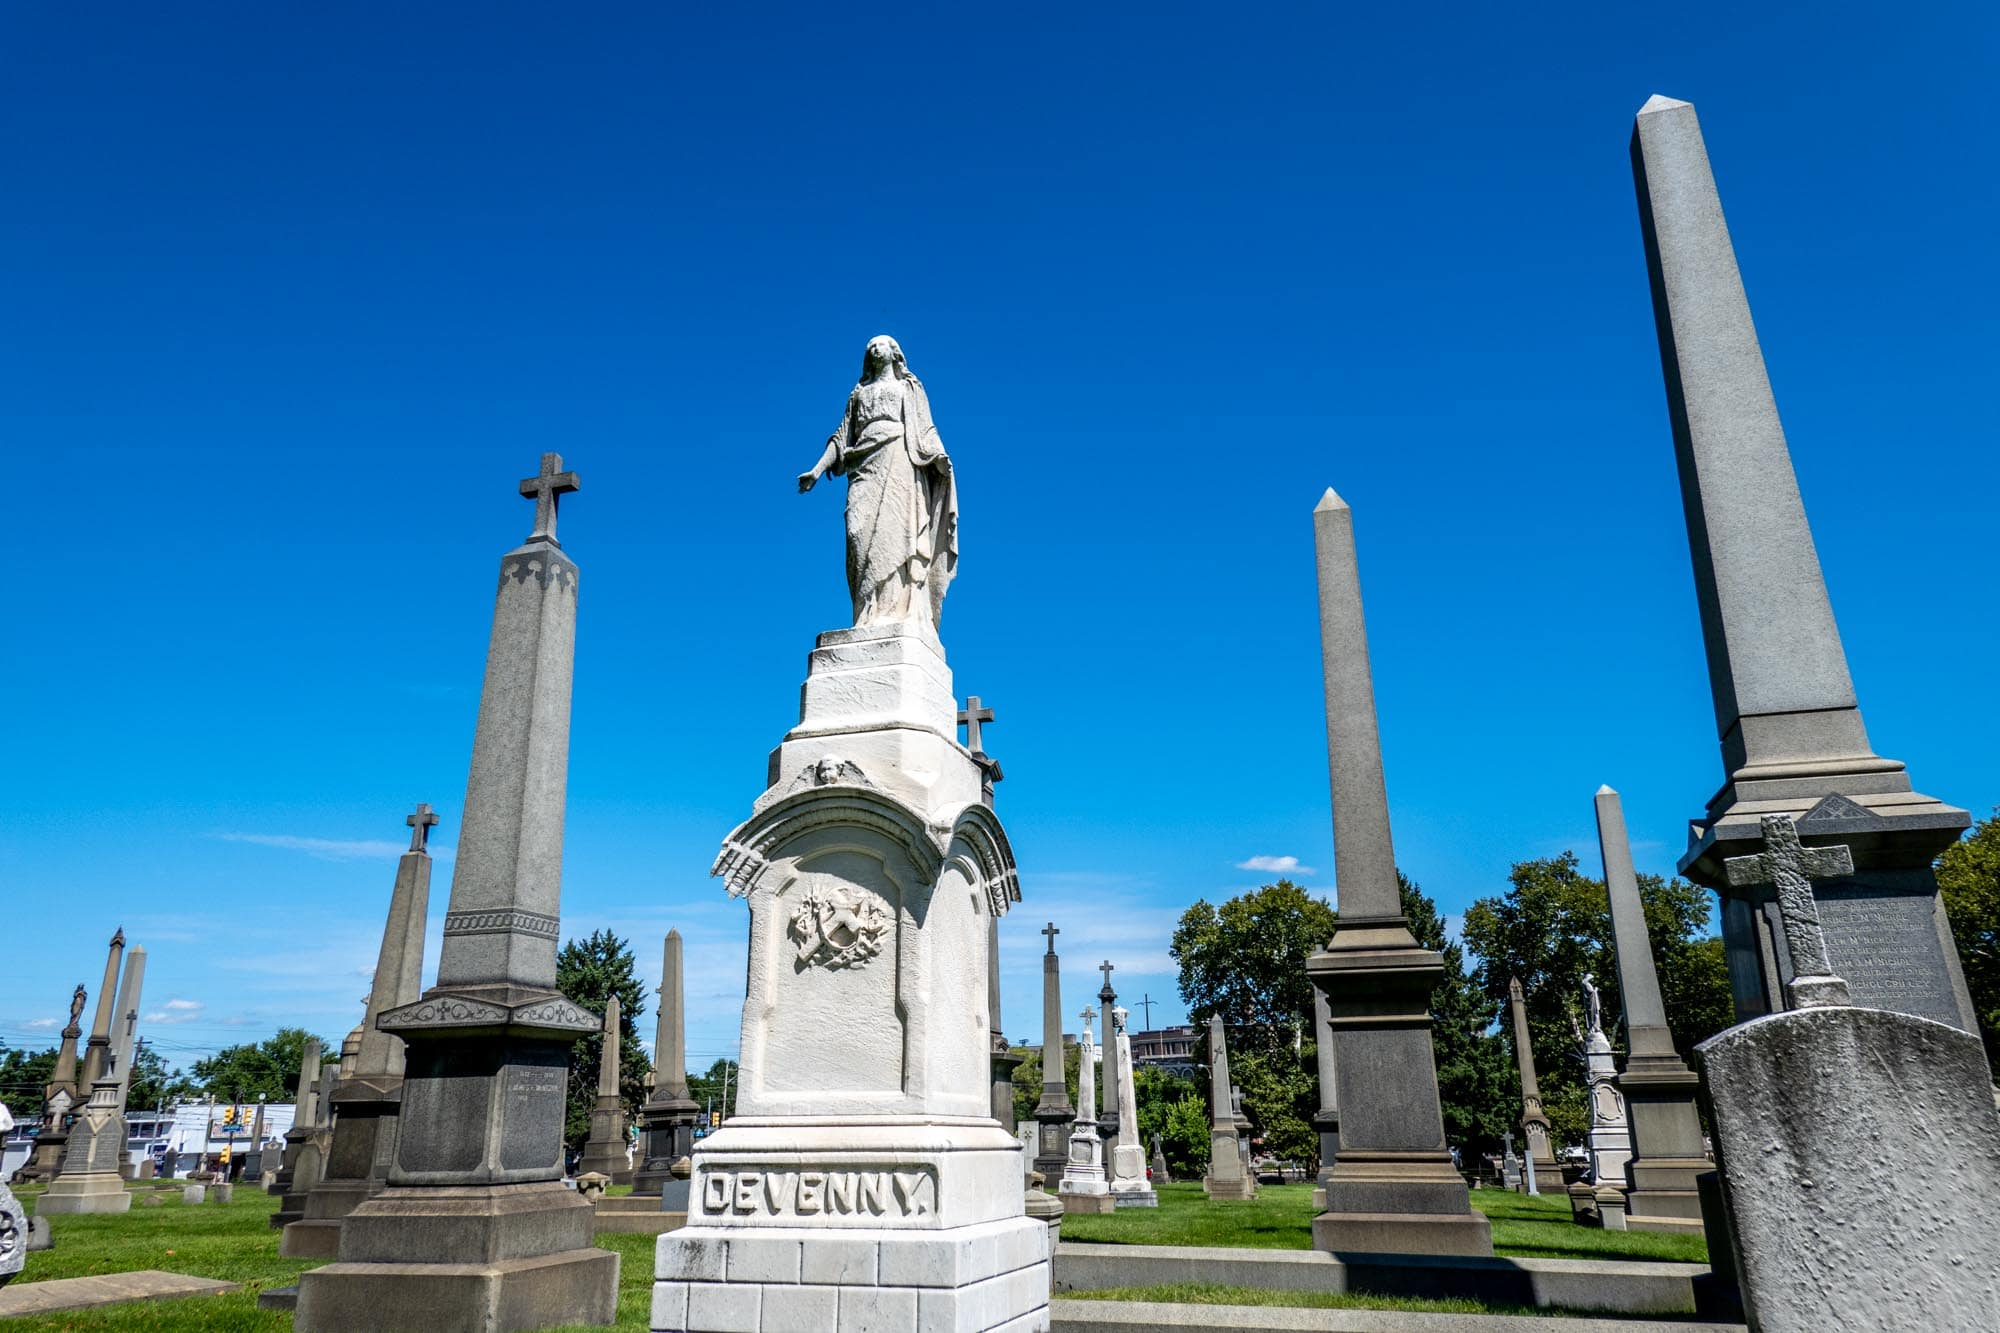 Monuments and obelisks in a cemetery